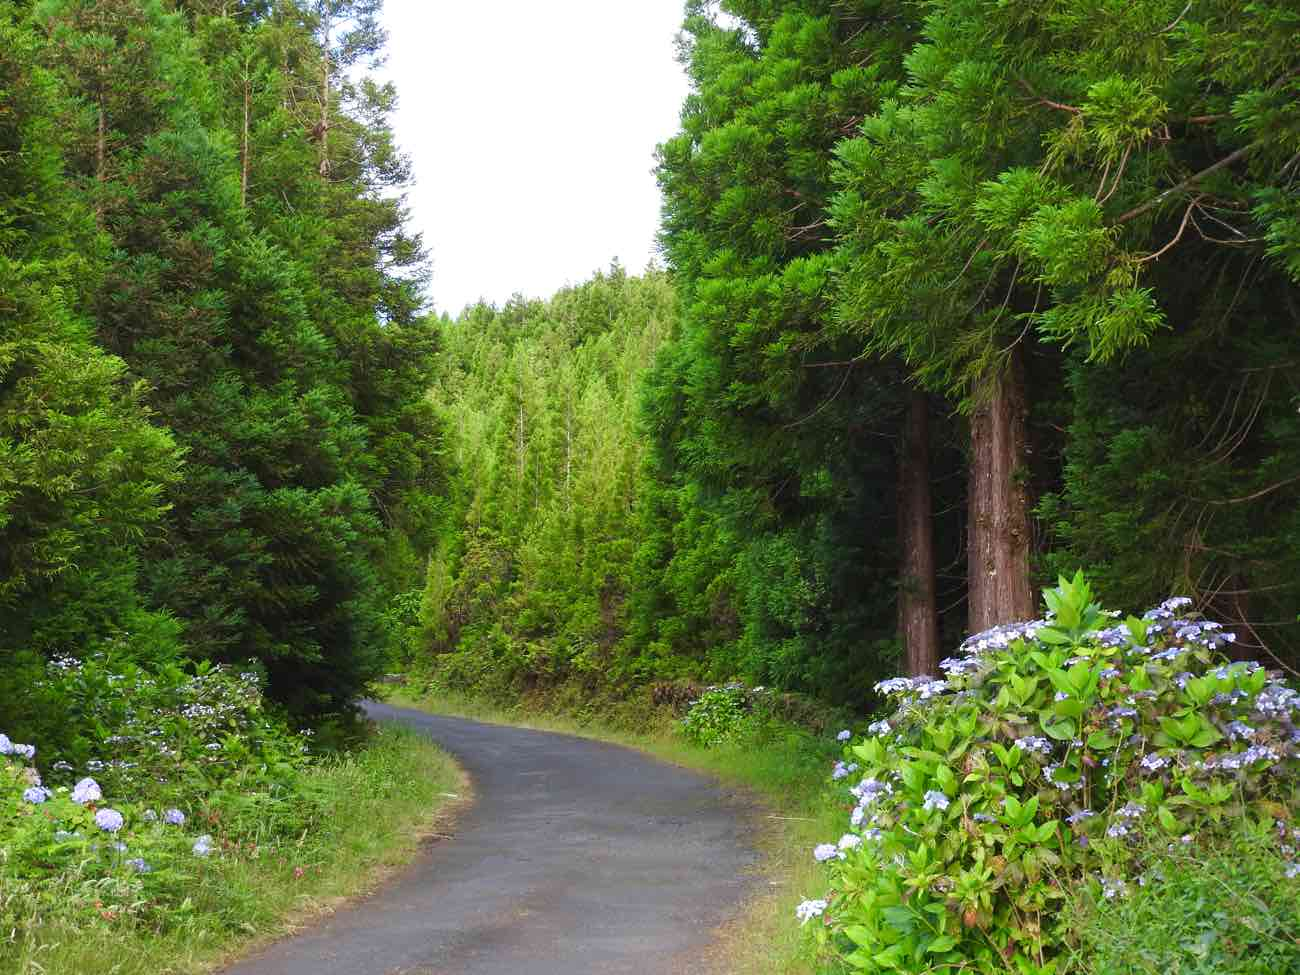 pico travel guide road green forest azores